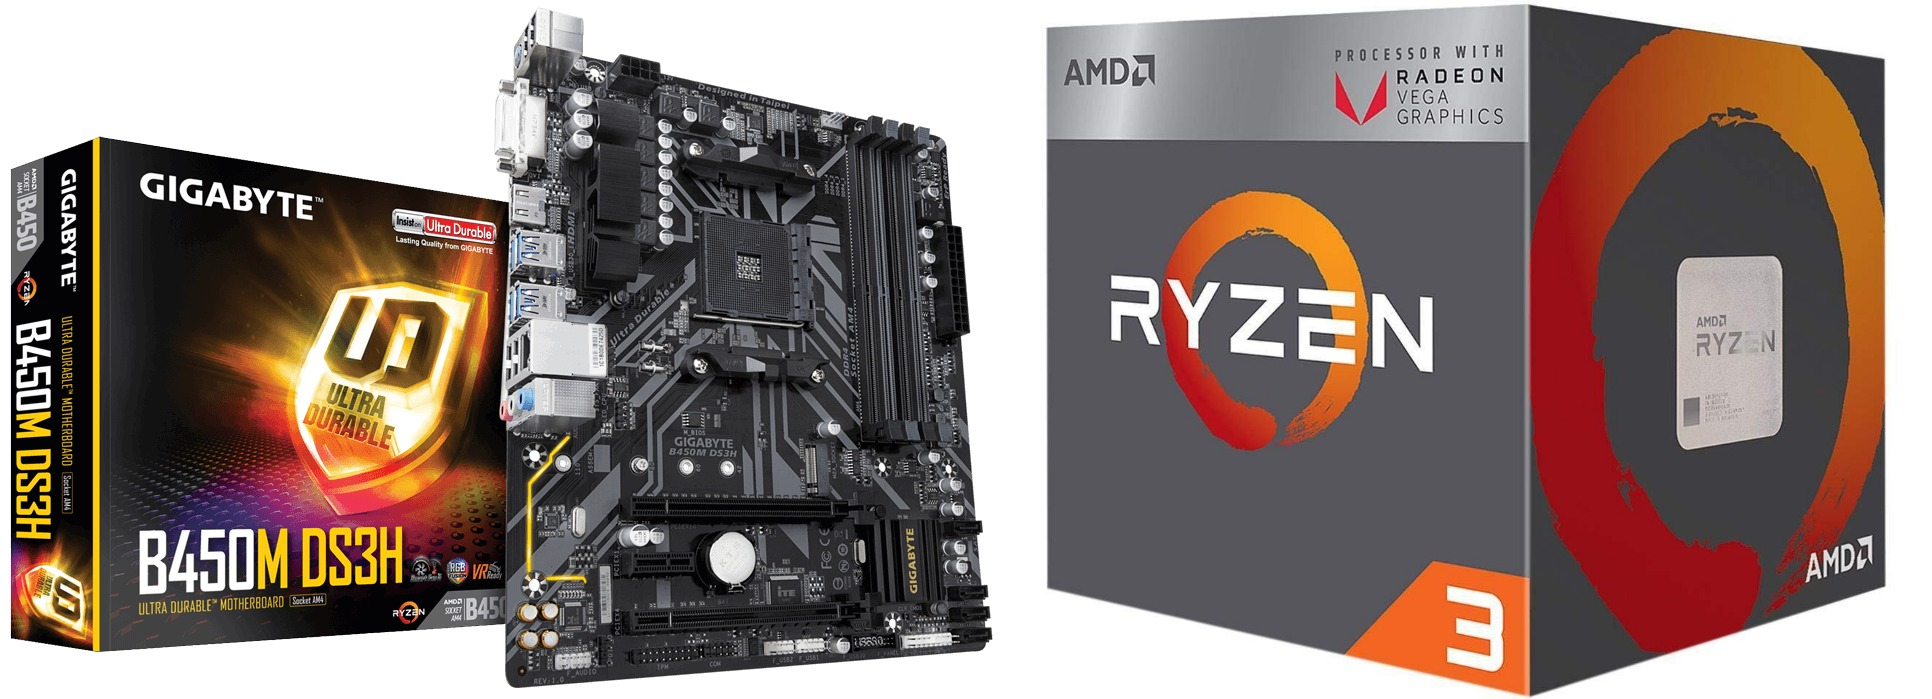 AMD Ryzen 3 2200G Processor with Radeon Vega 8 Graphics WITH GIGABYTE B450M  DS3H DDR4/AMD Ryzen AM4/B450/Micro ATX MOTHERBOARD